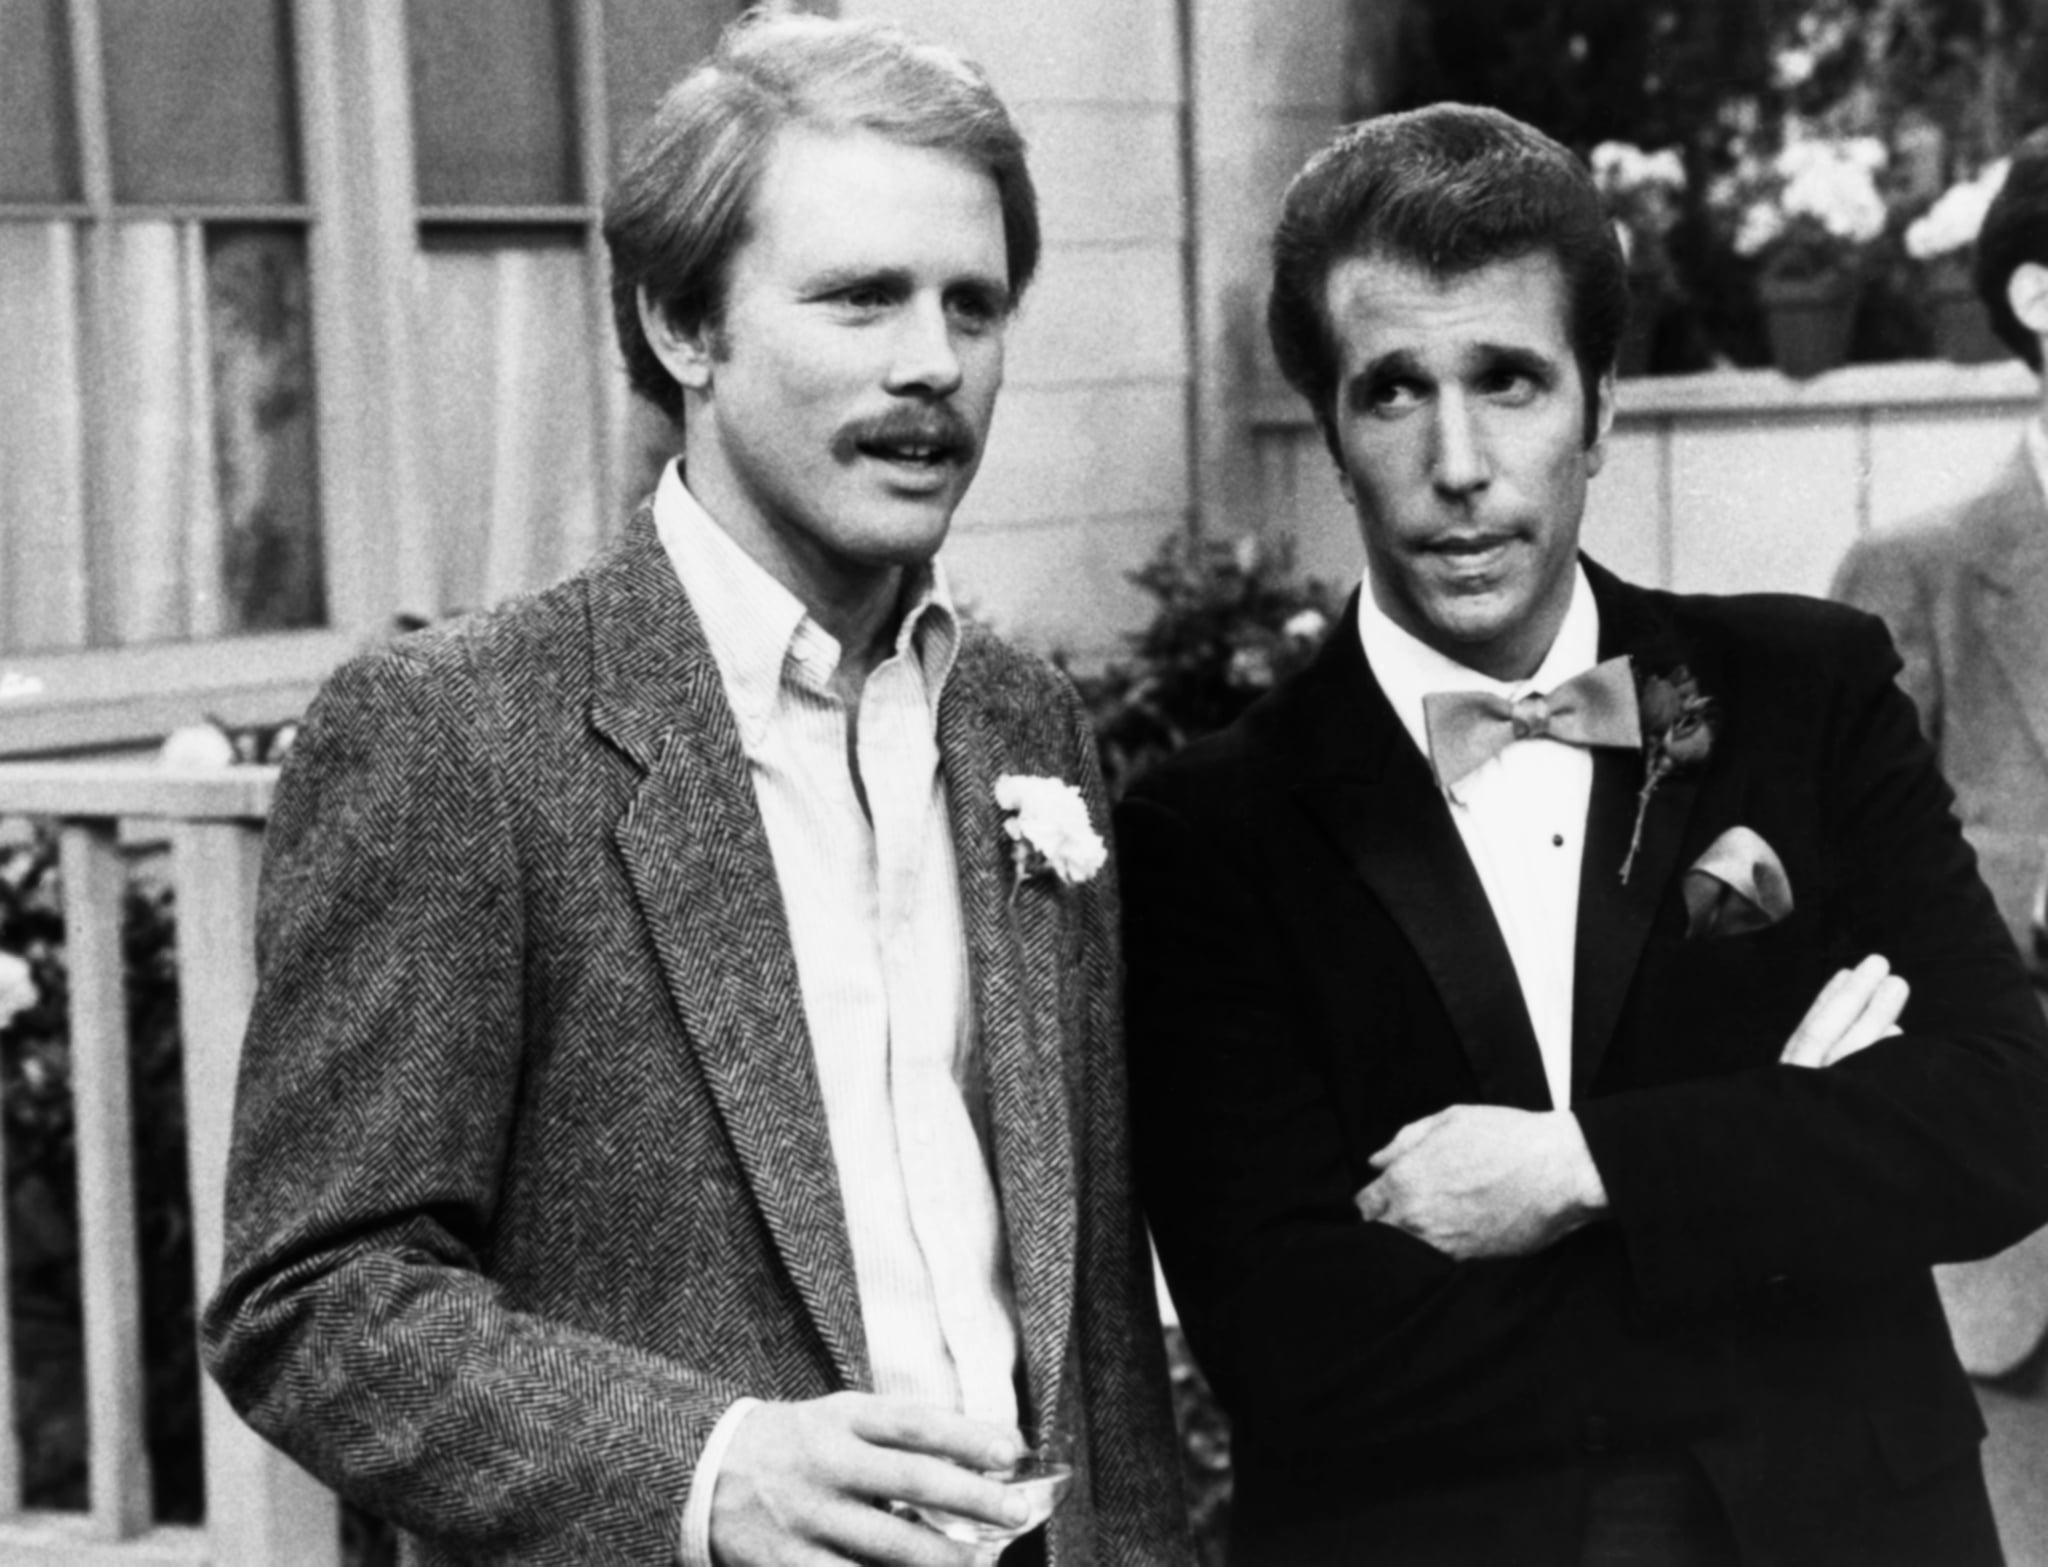 Ron Howard (Left) and Henry Winkler (Right) in Happy Days | Fonzie and  Richie Forever! This Happy Days Reunion at the Emmys Is What We Needed